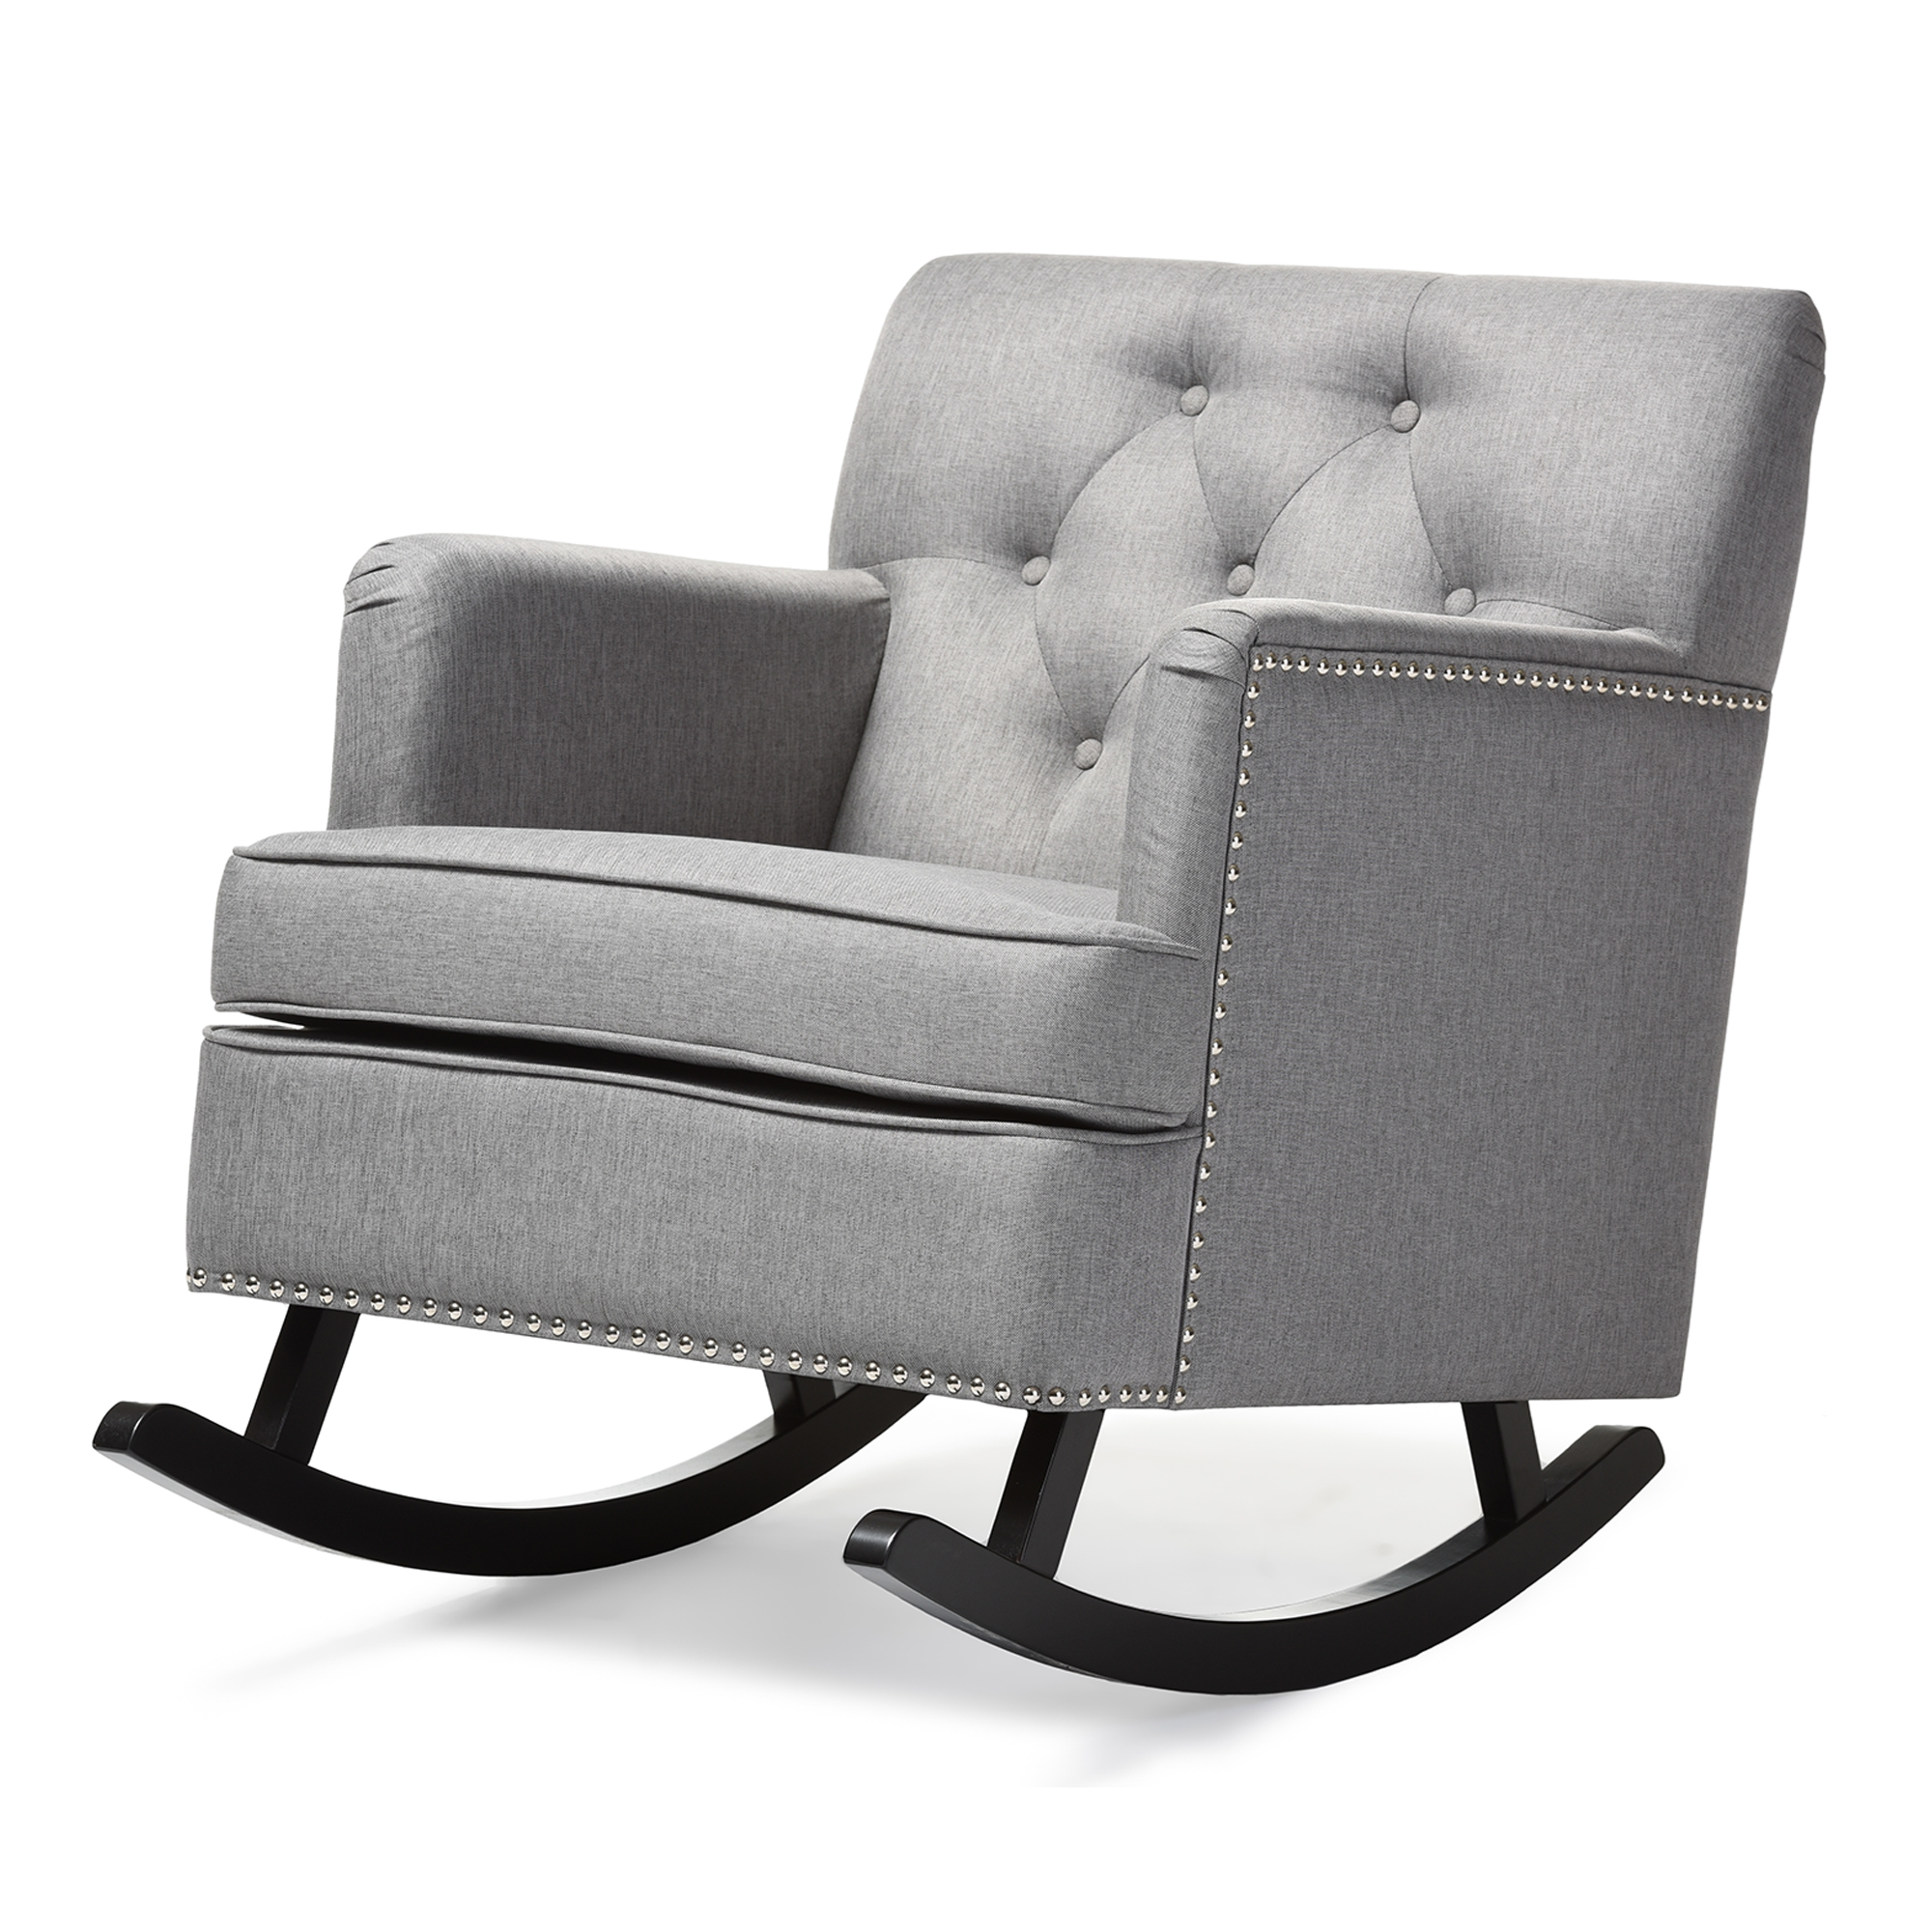 ... Baxton Studio Bethany Modern And Contemporary Grey Fabric Upholstered  Button Tufted Rocking Chair   IEBBT5189 ...